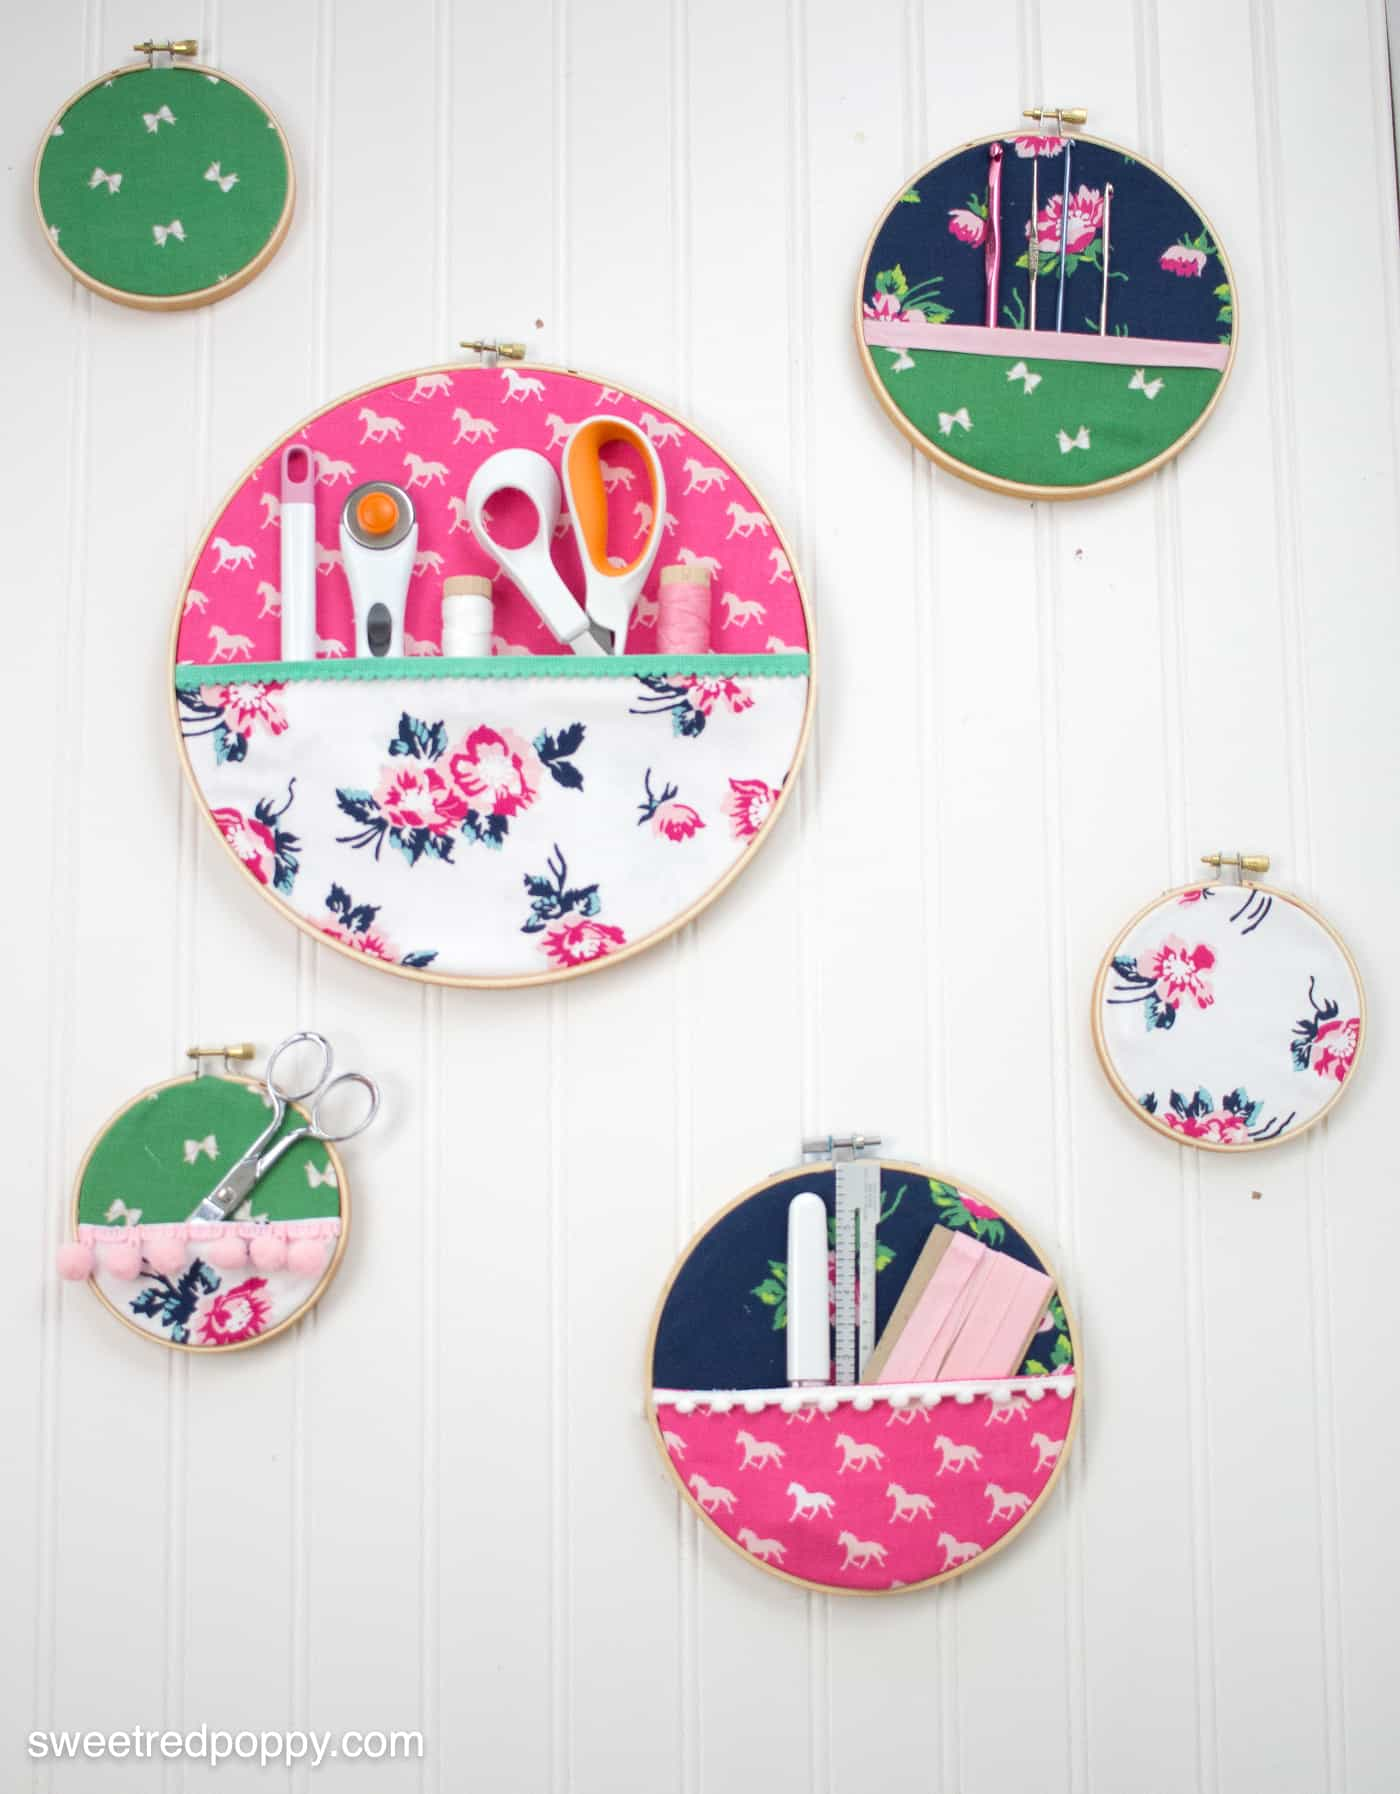 Embroidery hoop pocket organizer